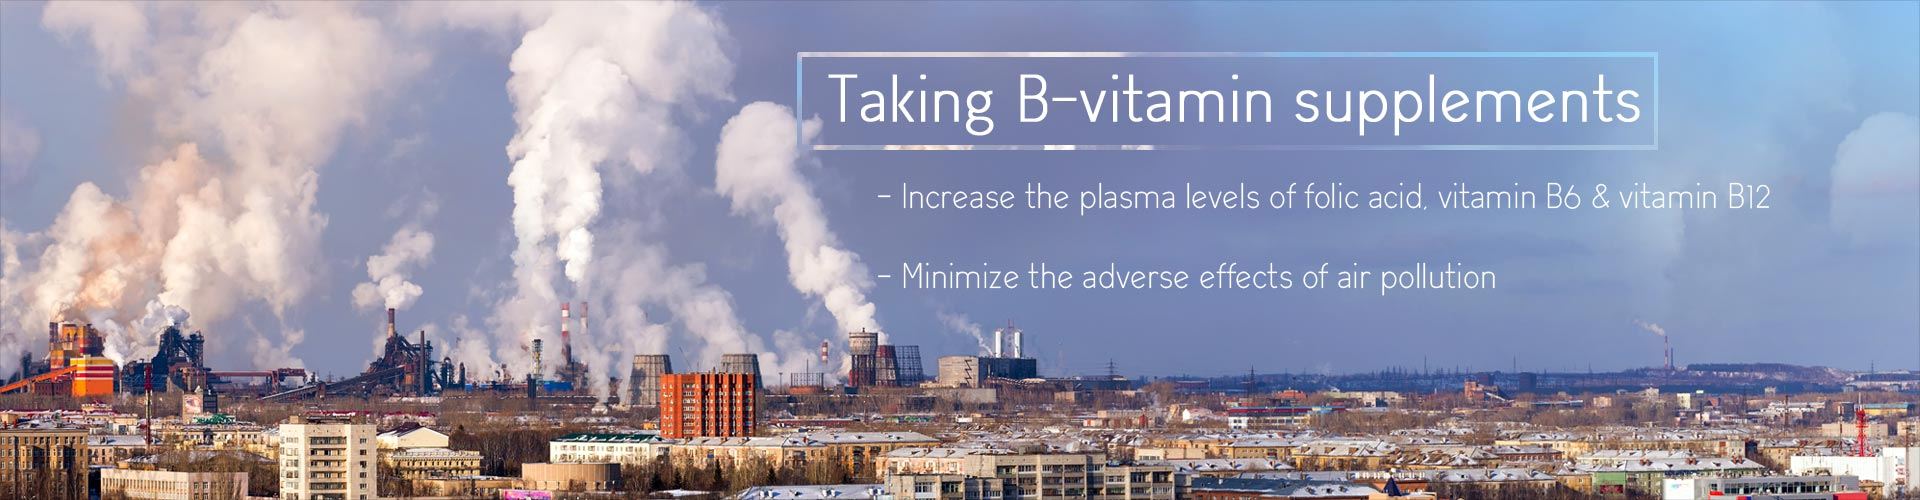 B Vitamins Protect Against Effects Of Air Pollution